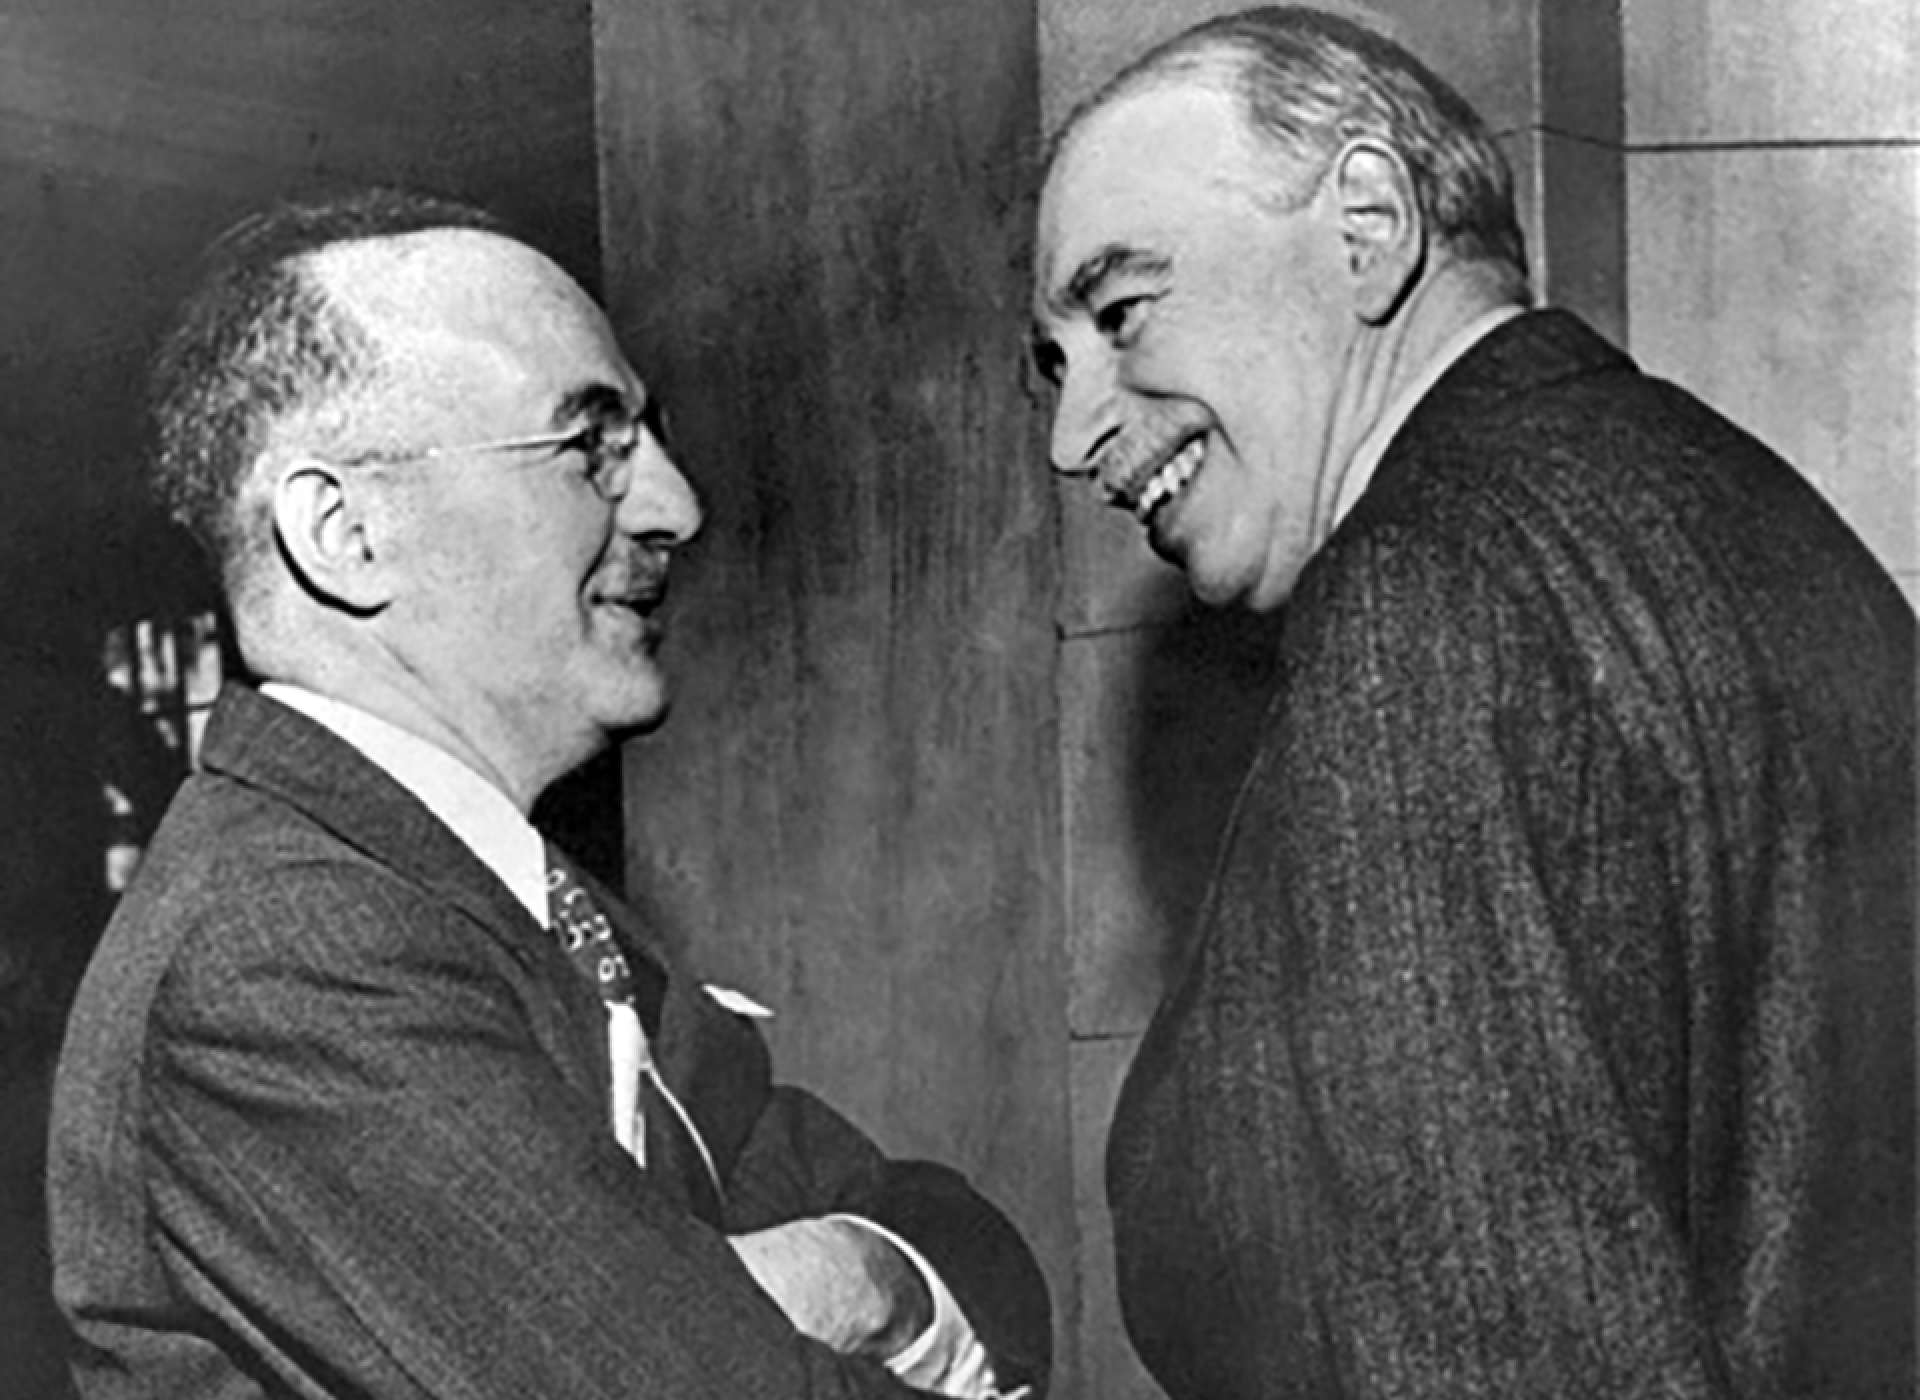 Harry Dexter White and John Maynard Keynes at Bretton Woods, July 1944